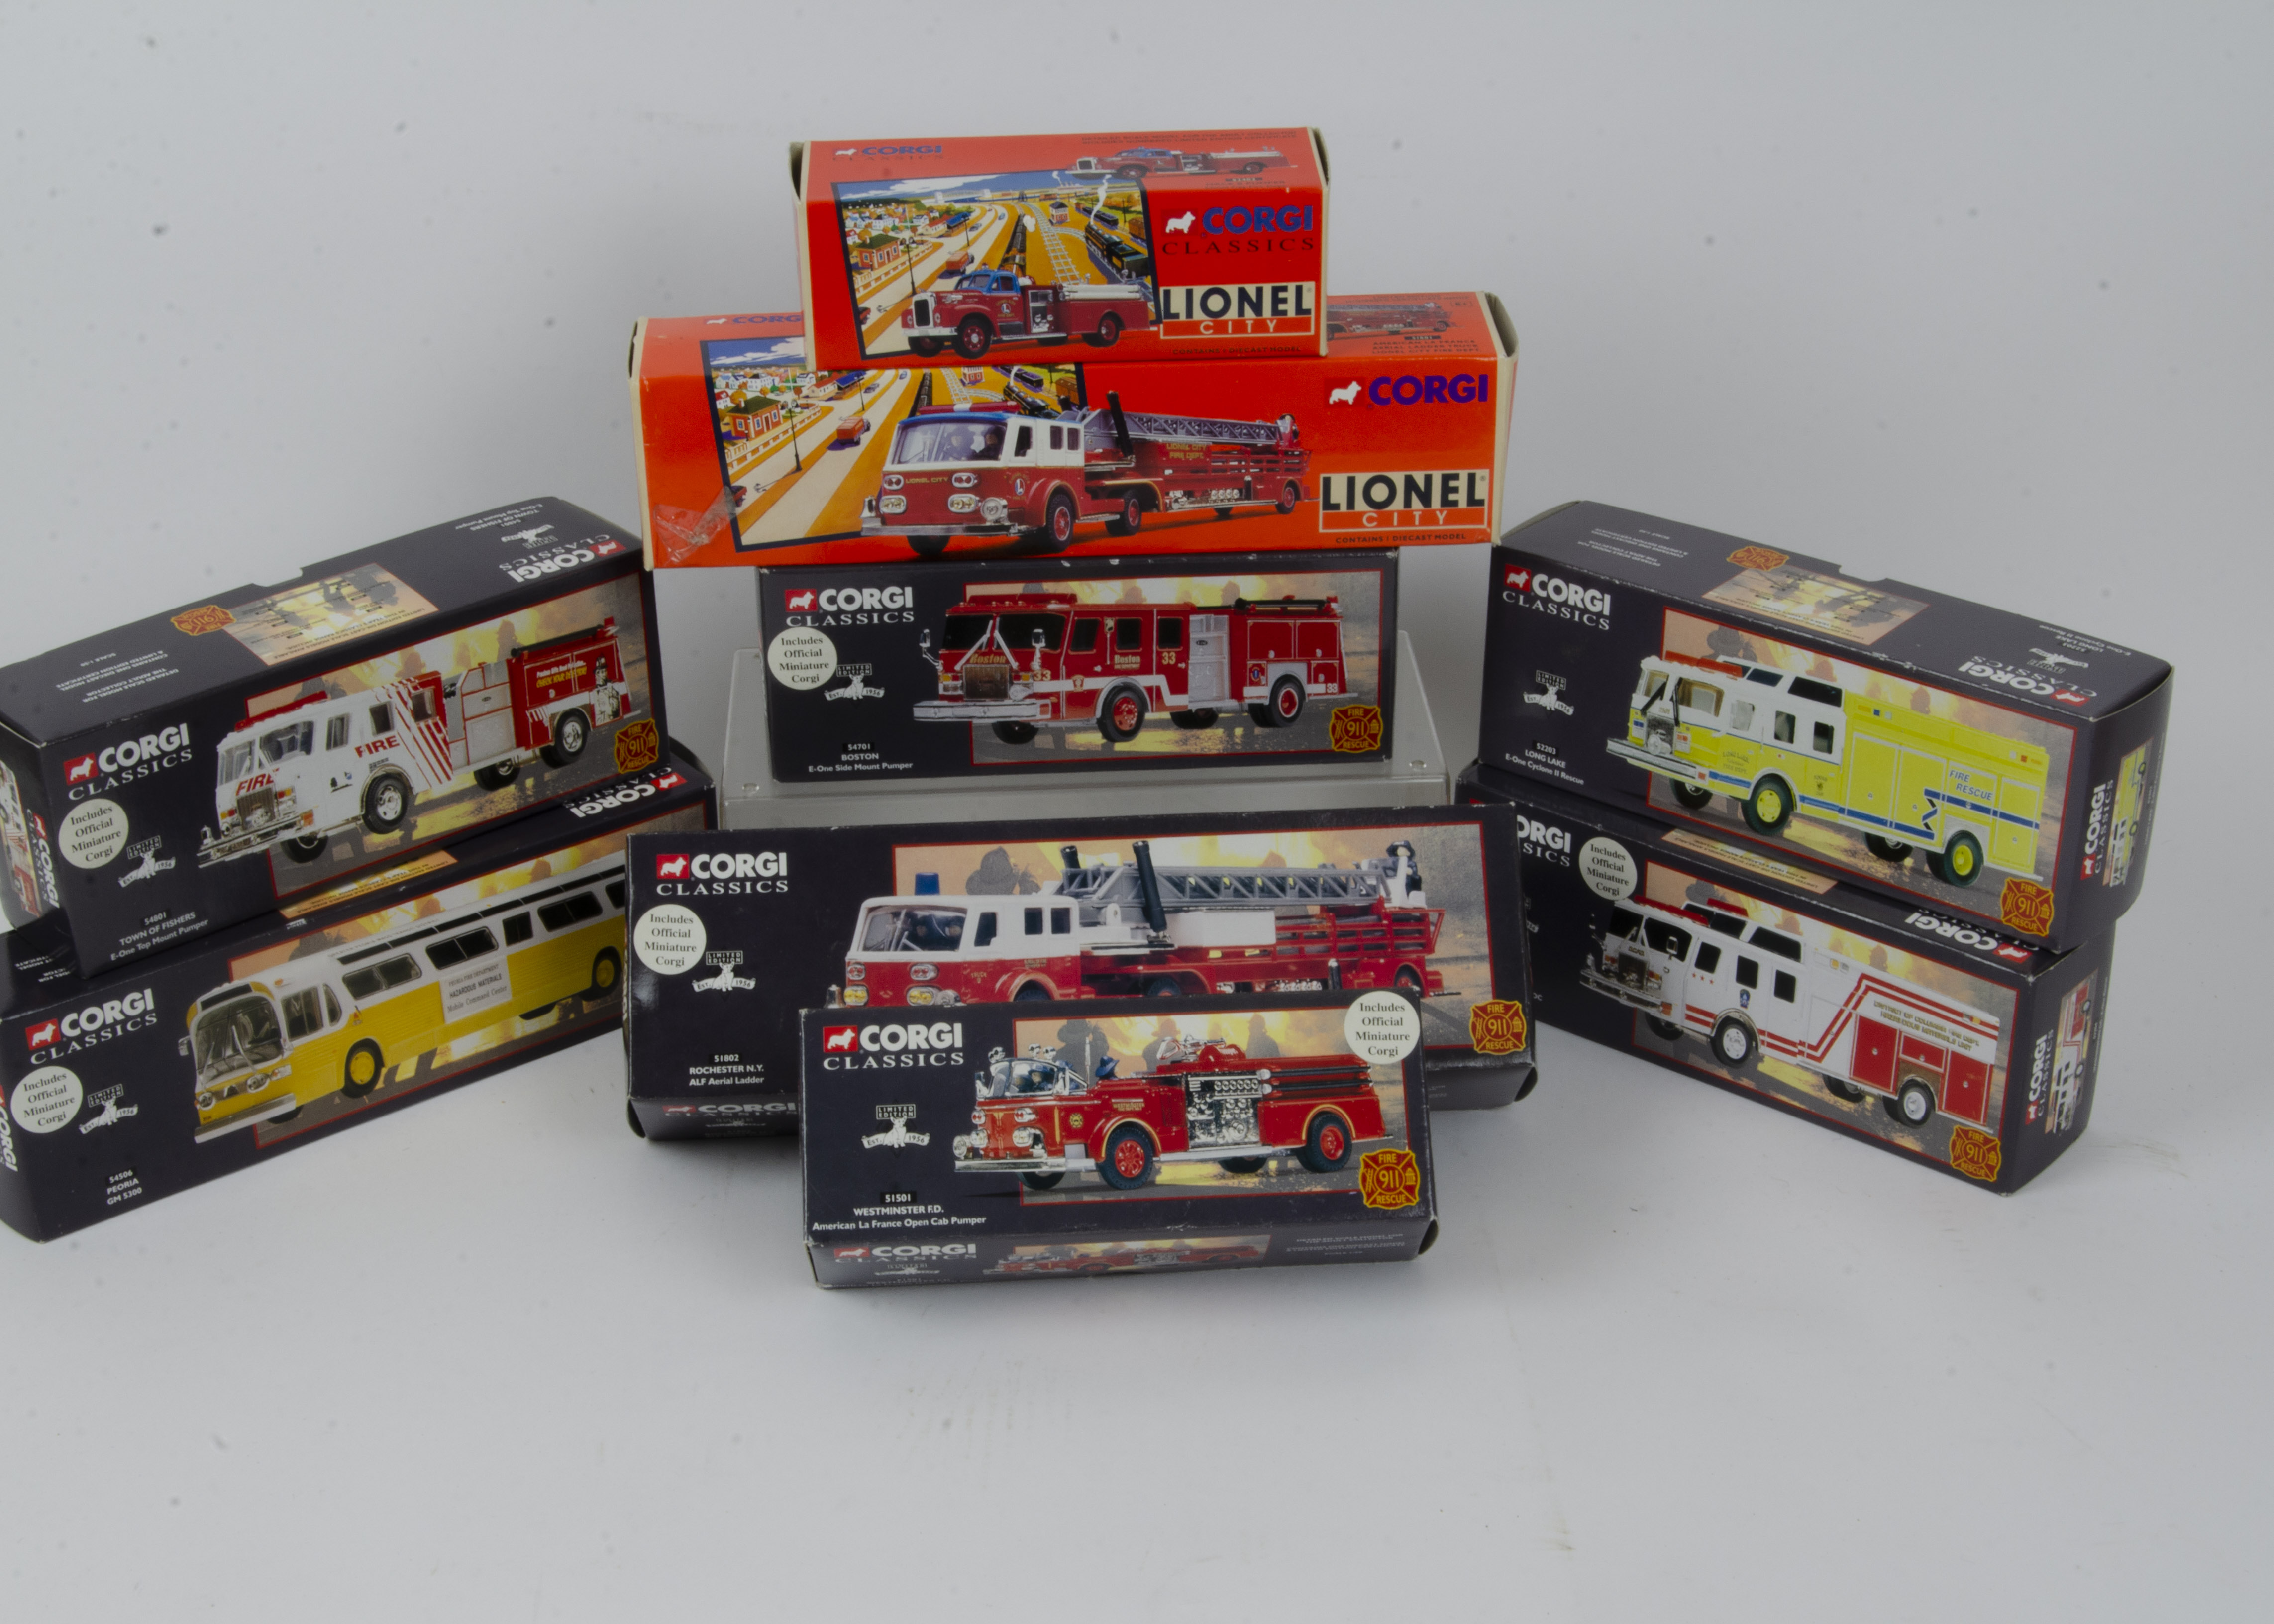 Corgi Classics American and Other Fire Engines and Related Vehicles, a boxed collection some limited